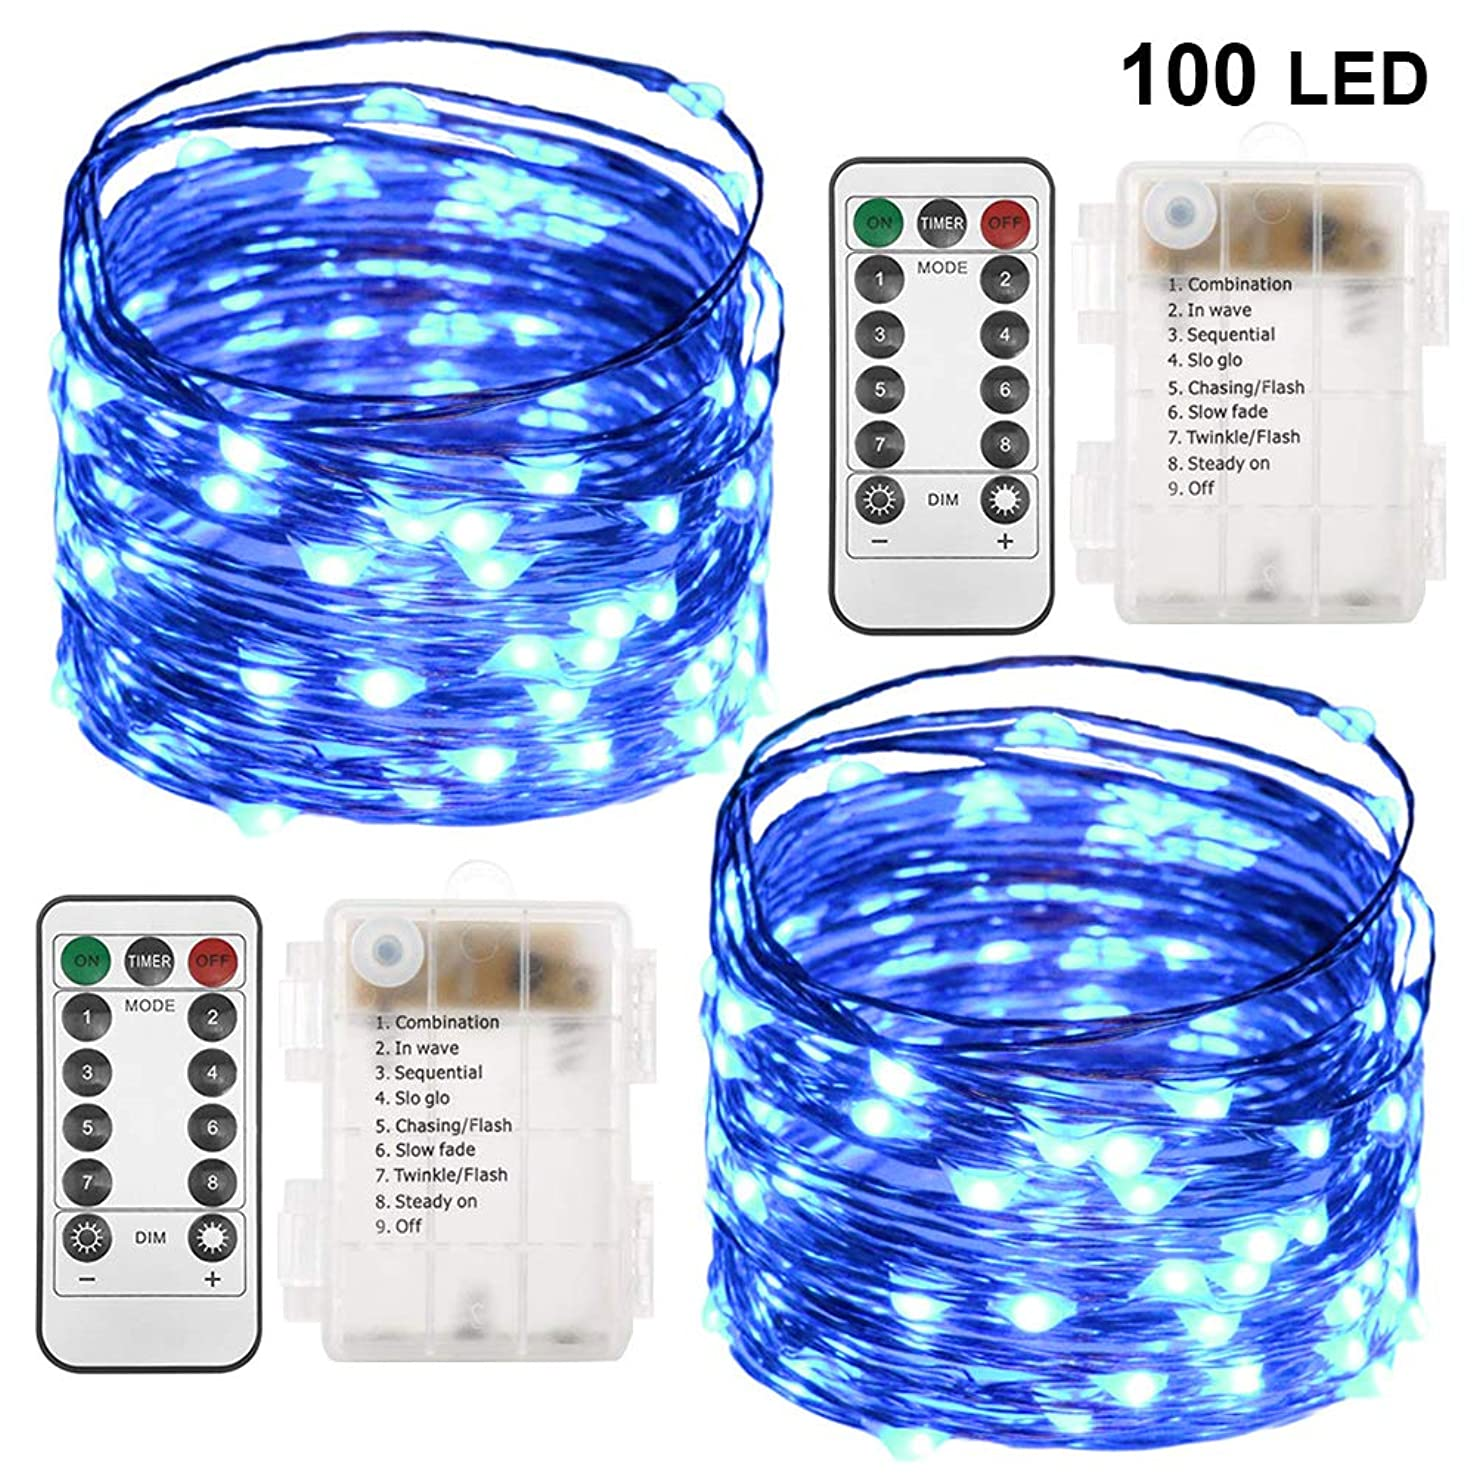 Twinkle Star 33FT 100 LED Copper Wire String Lights Fairy String Lights Battery Operated Waterproof 8 Modes LED String Lights with Remote Control Decor for Christmas Wedding Party Home, 2 Pack, Blue